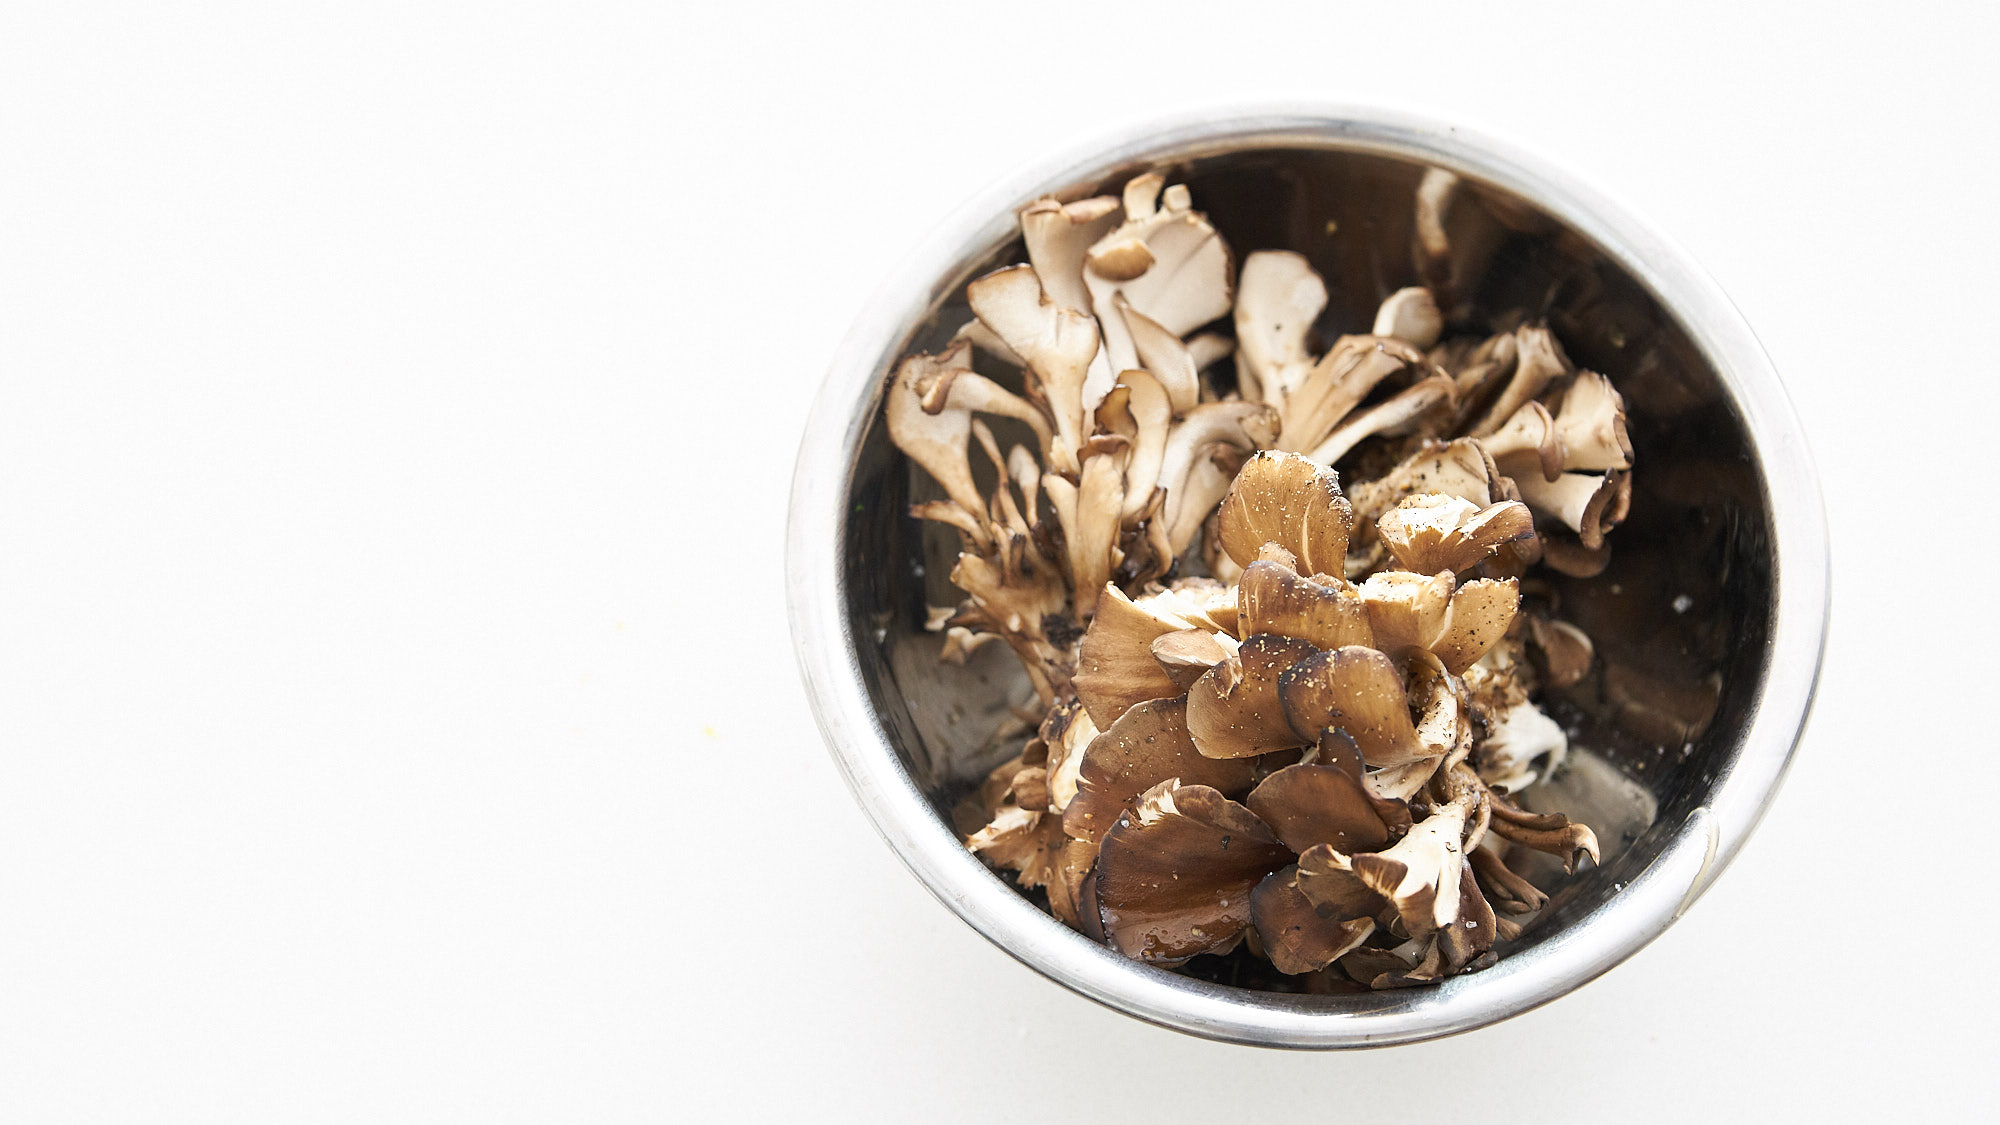 Maitake mushrooms tossed with olive oil, salt and pepper, ready to be roasted.